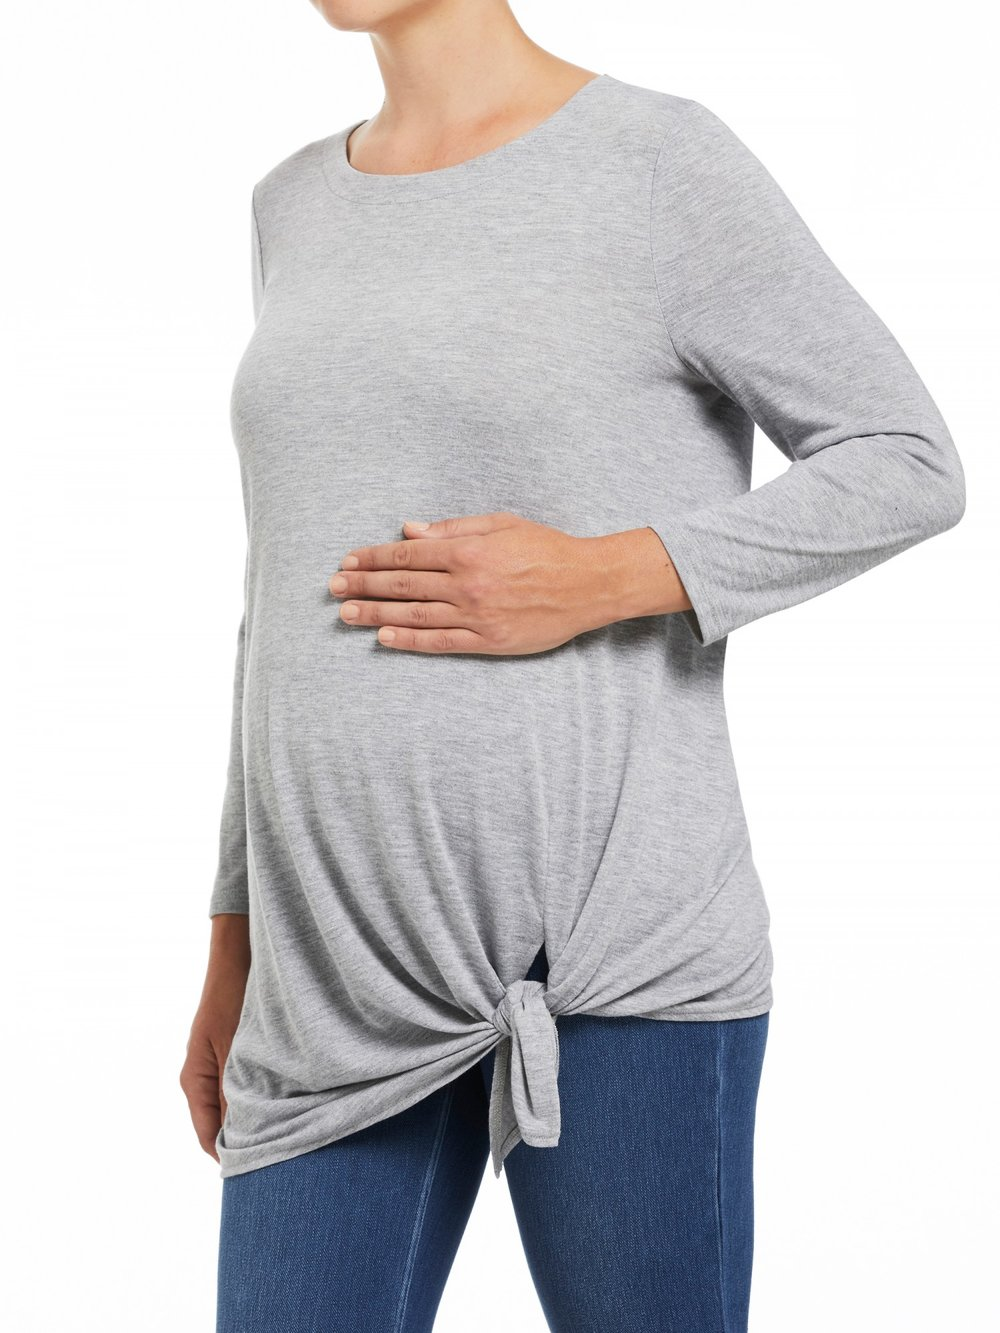 Purchase in-store or online $34.97 - Loose or flowing tops are a pregnant woman's best friend! Especially in the warmer months. SUSSAN have a large range of pretty maternity shirts to choose from. This tie fronted grey number could be worn over a body con dress or with a pair of jeans.